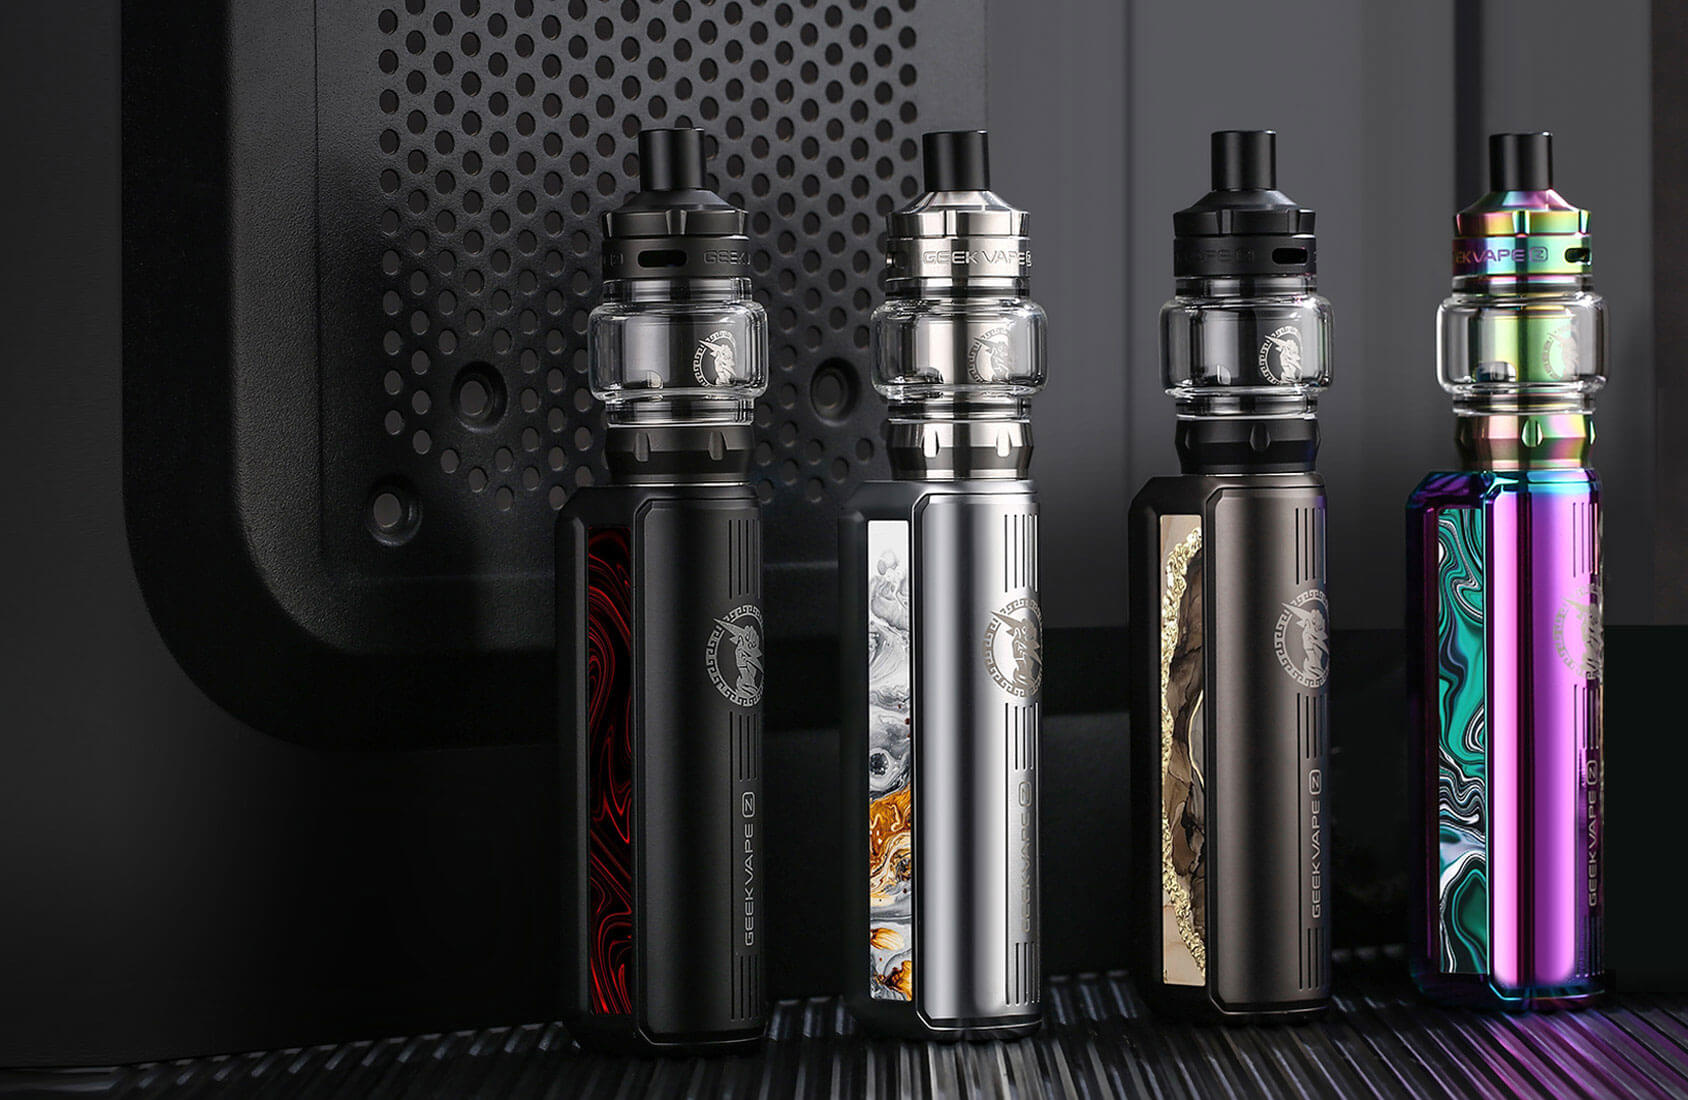 Kit Z50 Geek Vape